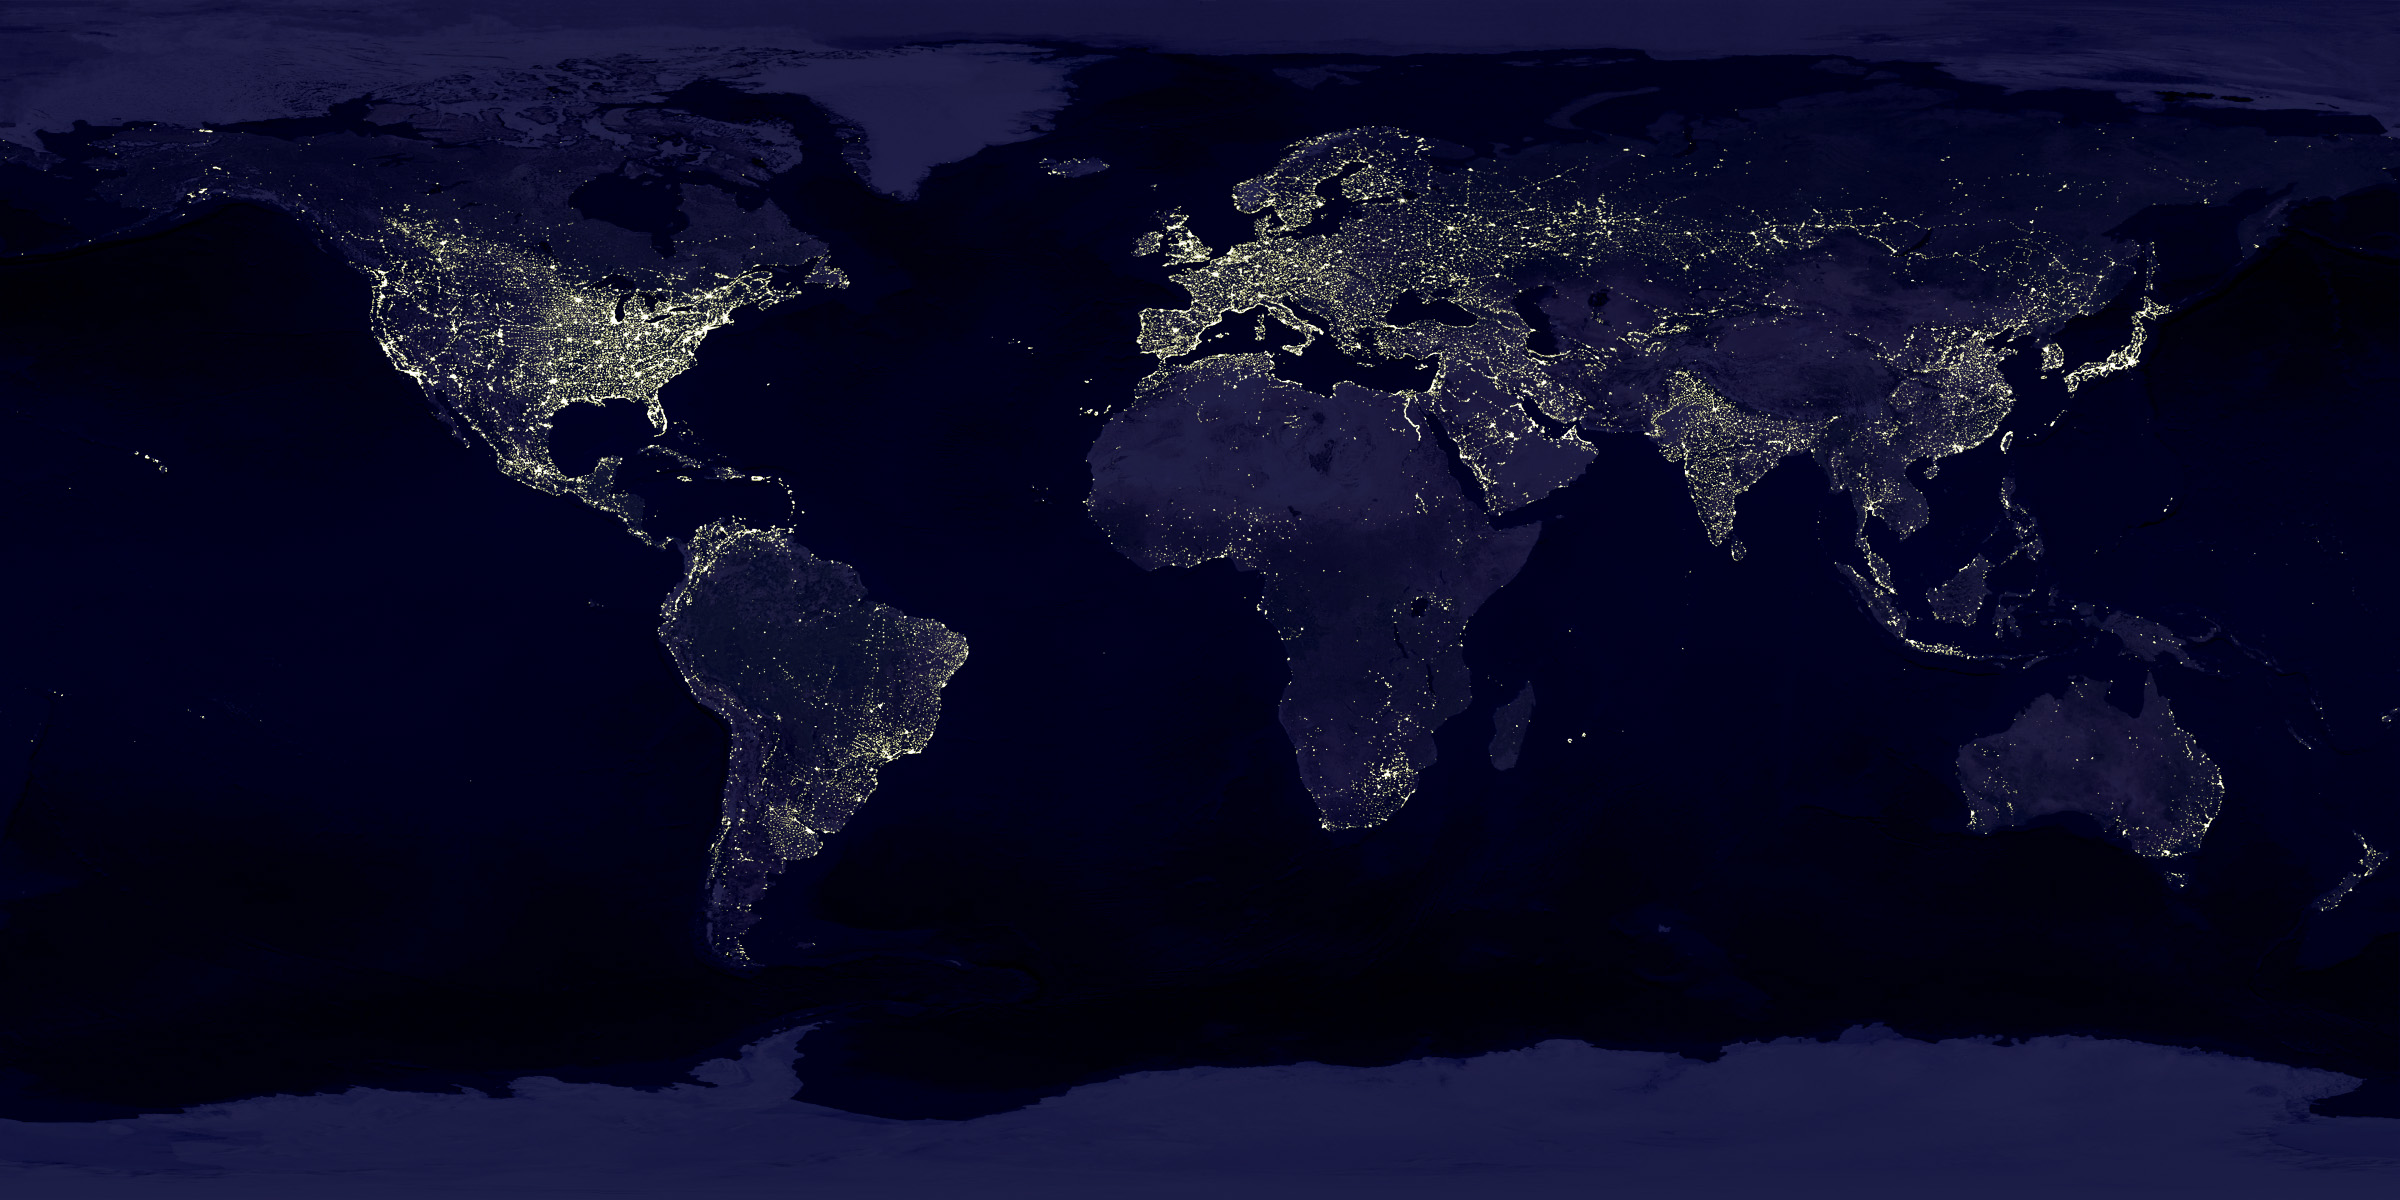 World Light Map NASA Visible Earth: Earth's City Lights